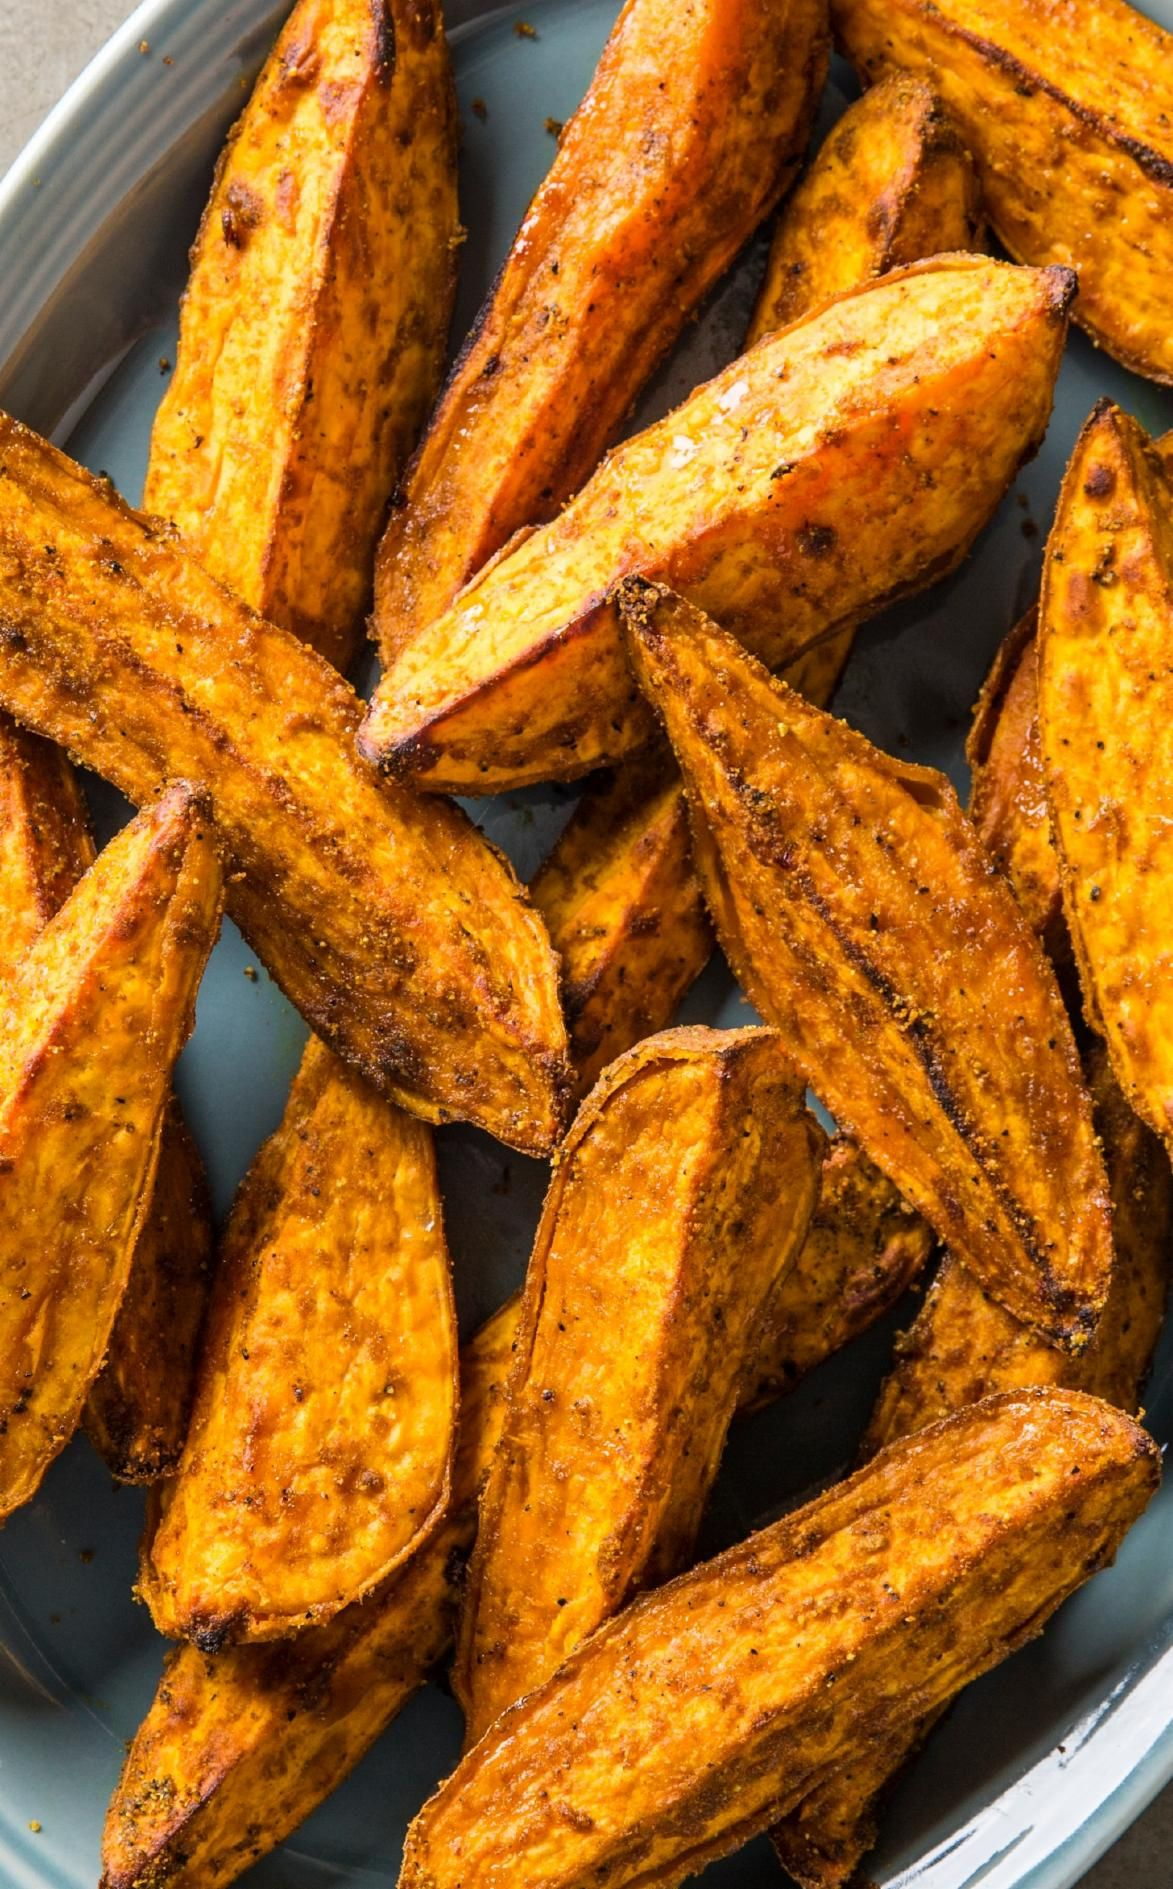 Roasted Sweet Potato Wedges Cook S Country Recipe Sweet Potato Wedges Easy Thanksgiving Recipes Roasted Sweet Potatoes